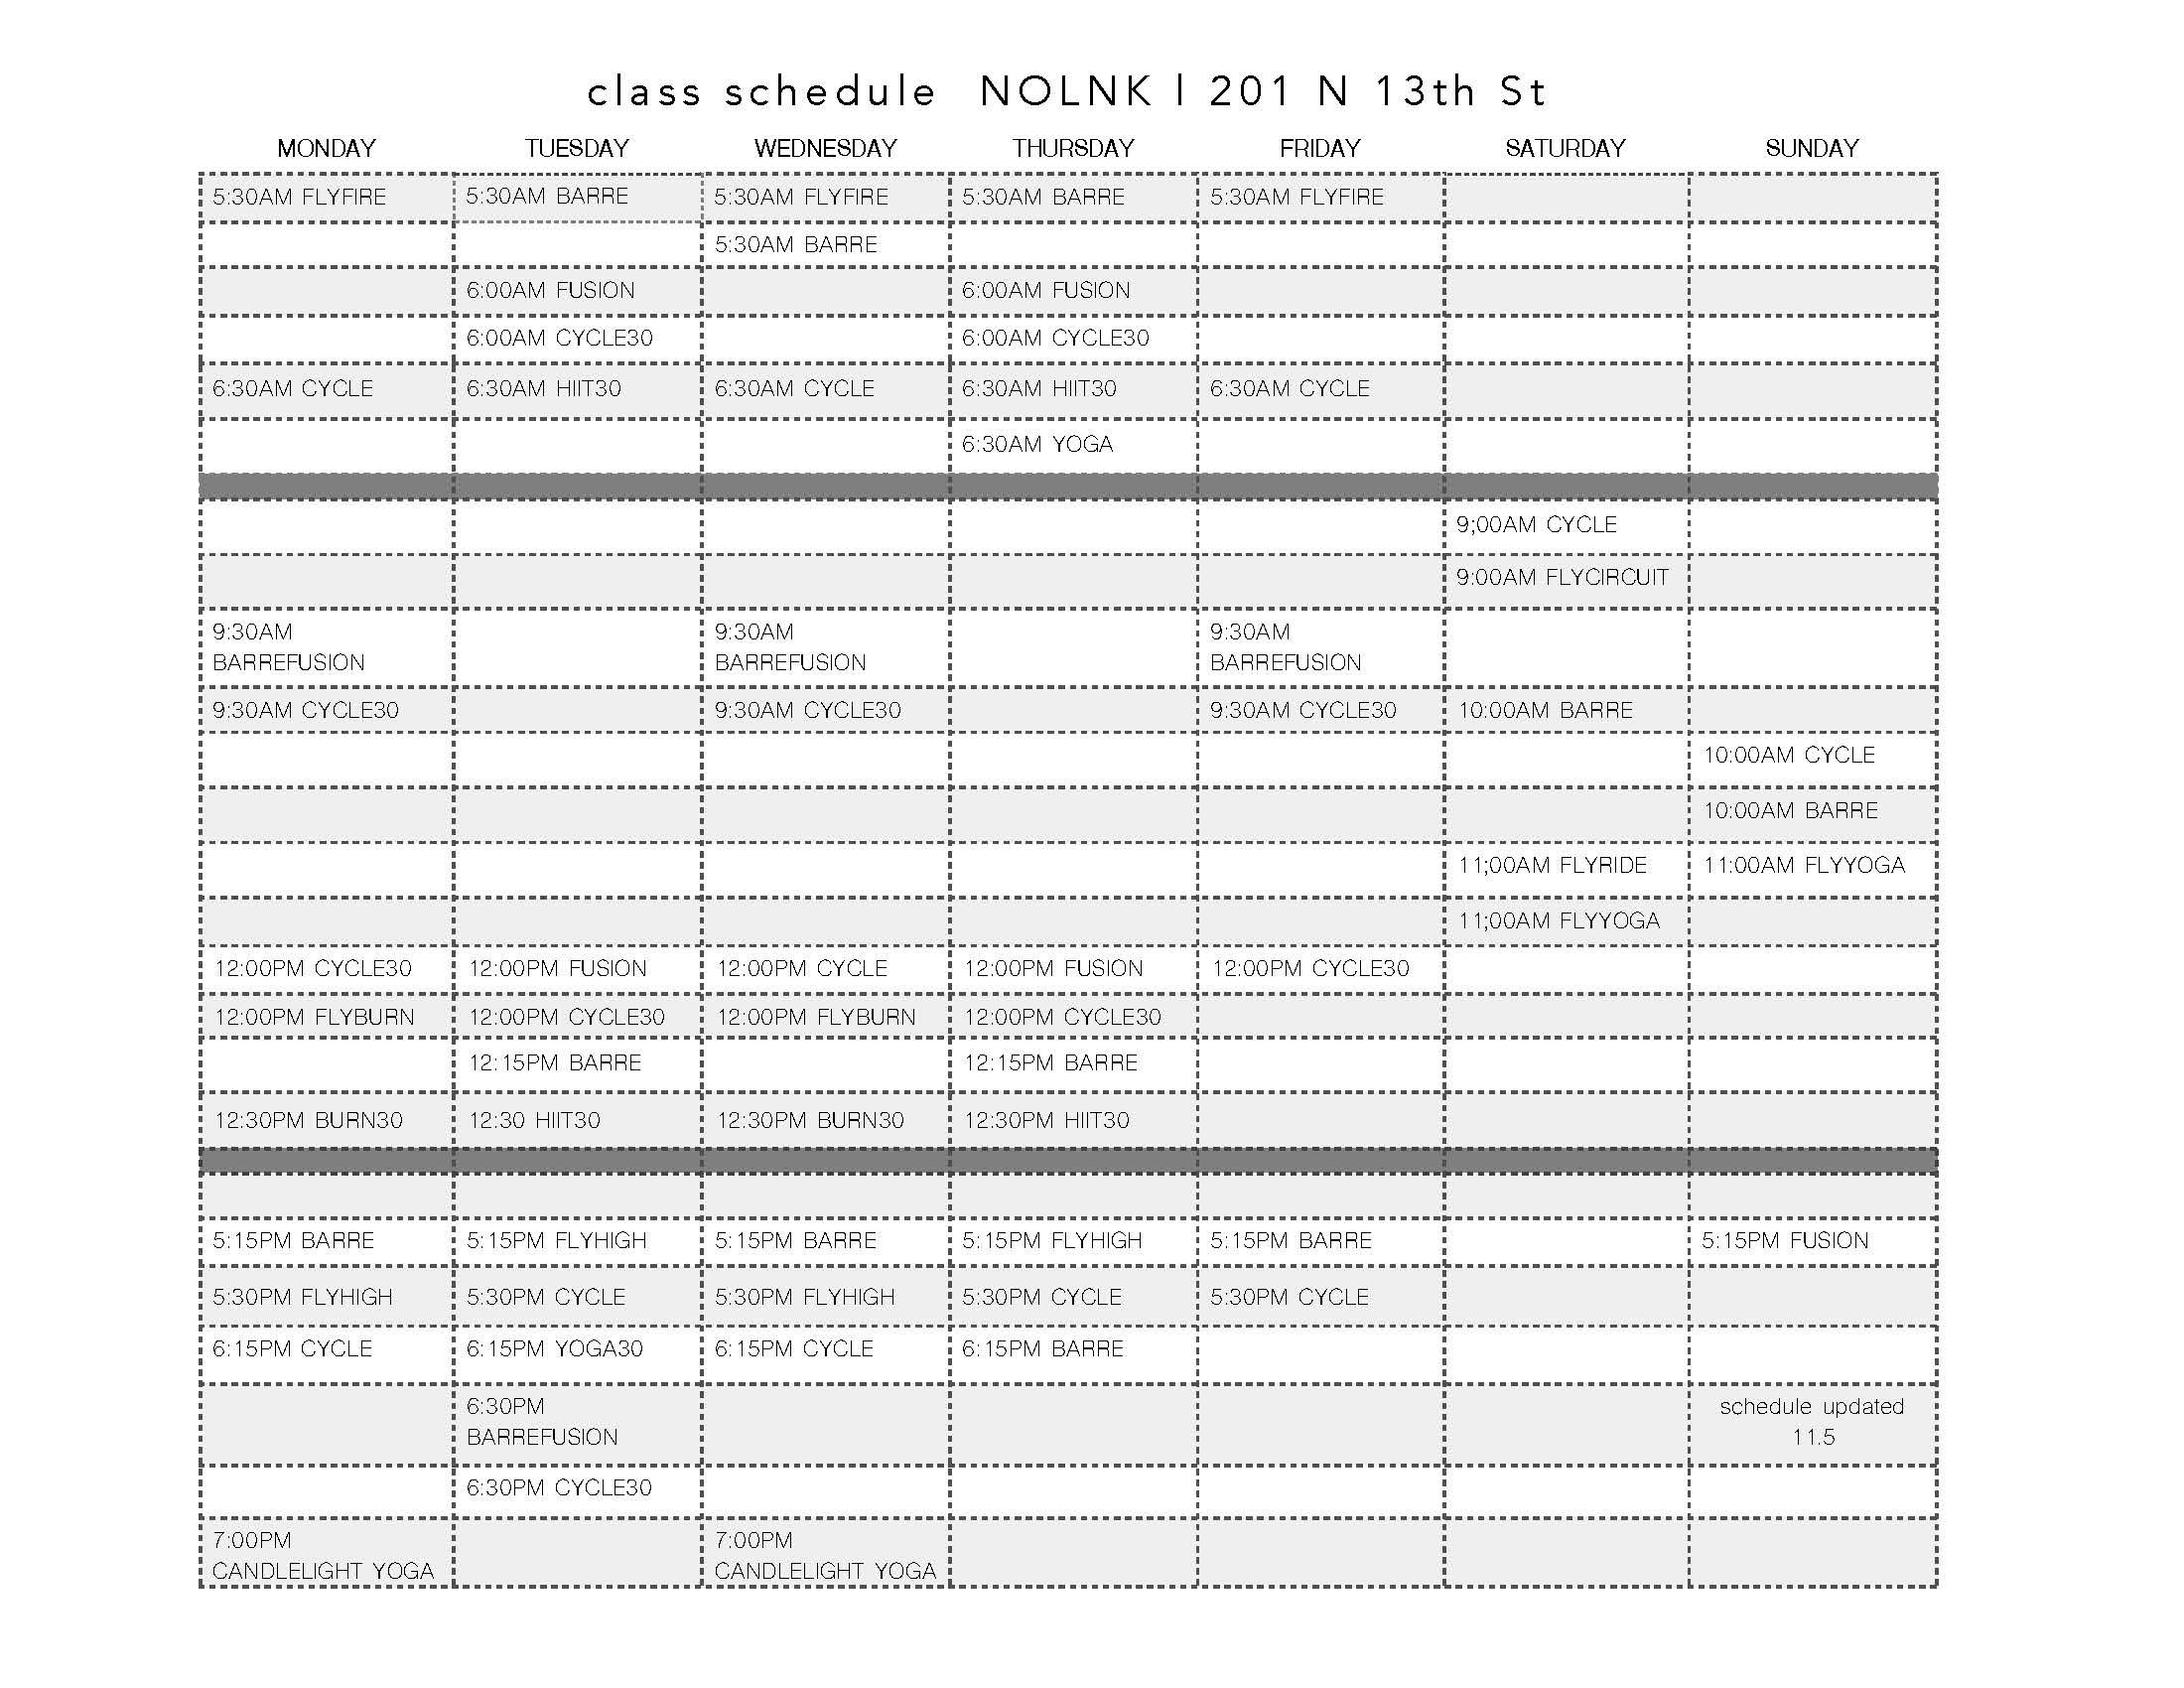 Fly class schedule lincoln ne